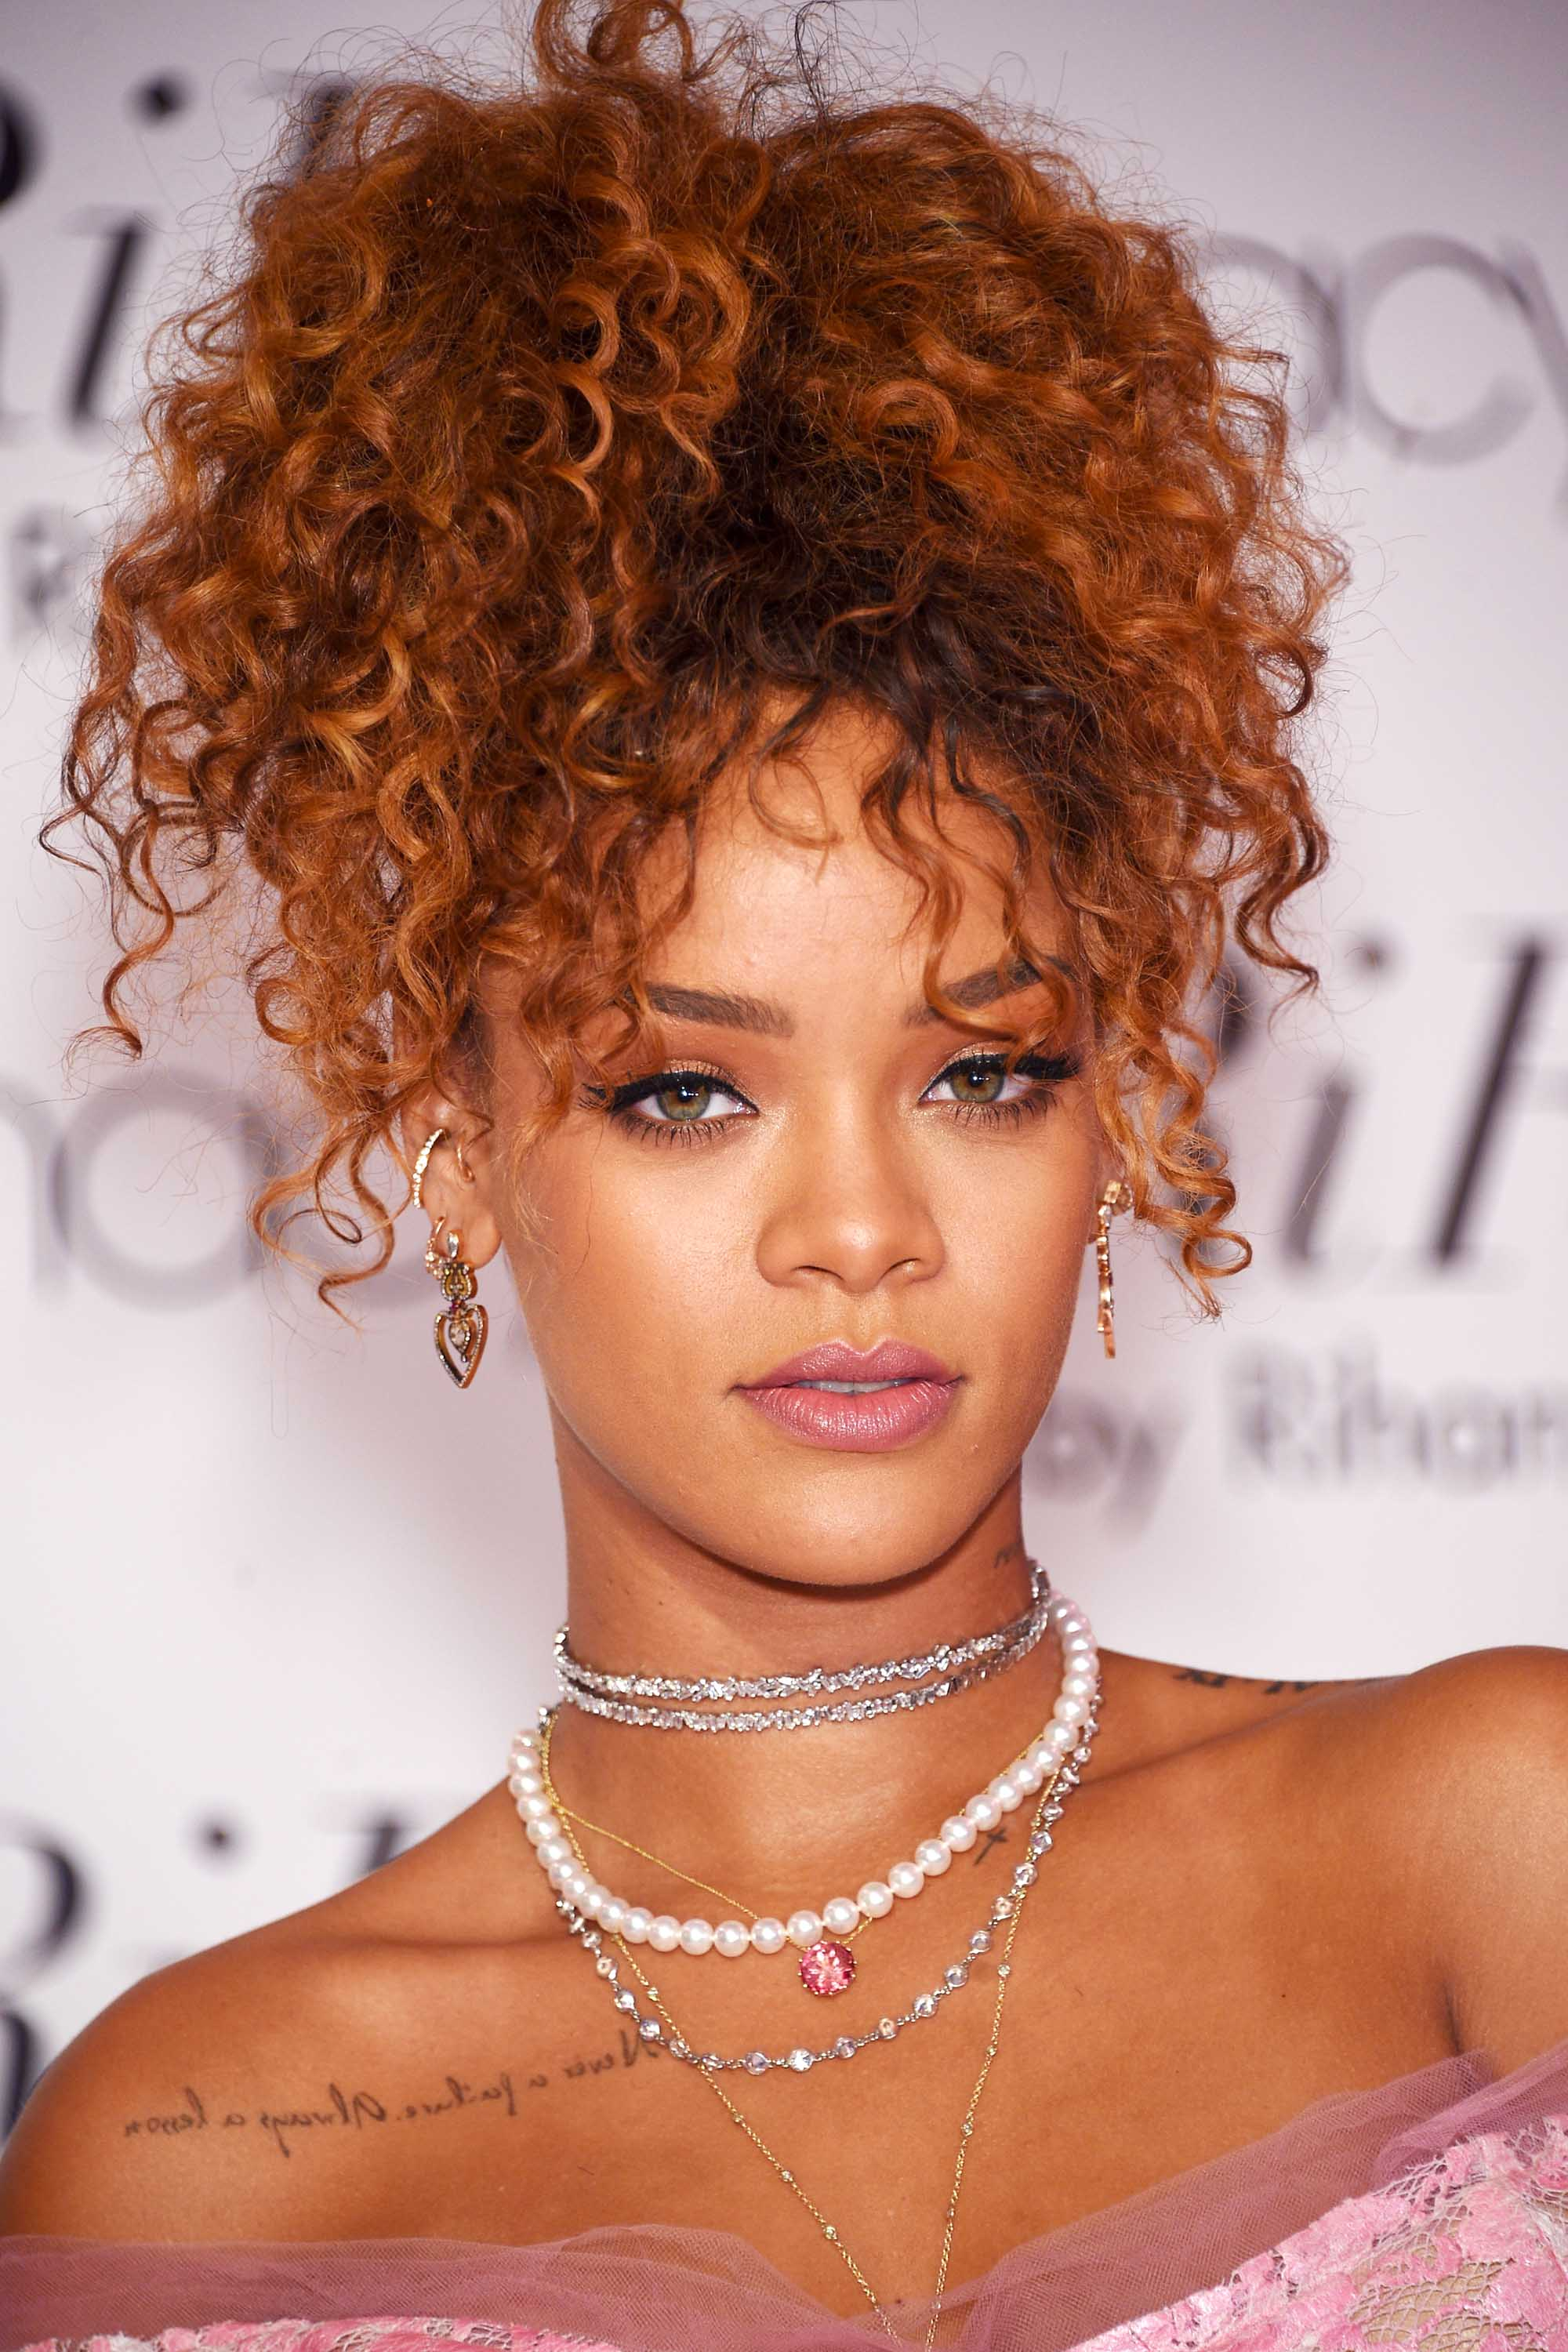 Tremendous 50 Best Rihanna Hairstyles Our Favorite Rihanna Hair Looks Of Short Hairstyles For Black Women Fulllsitofus